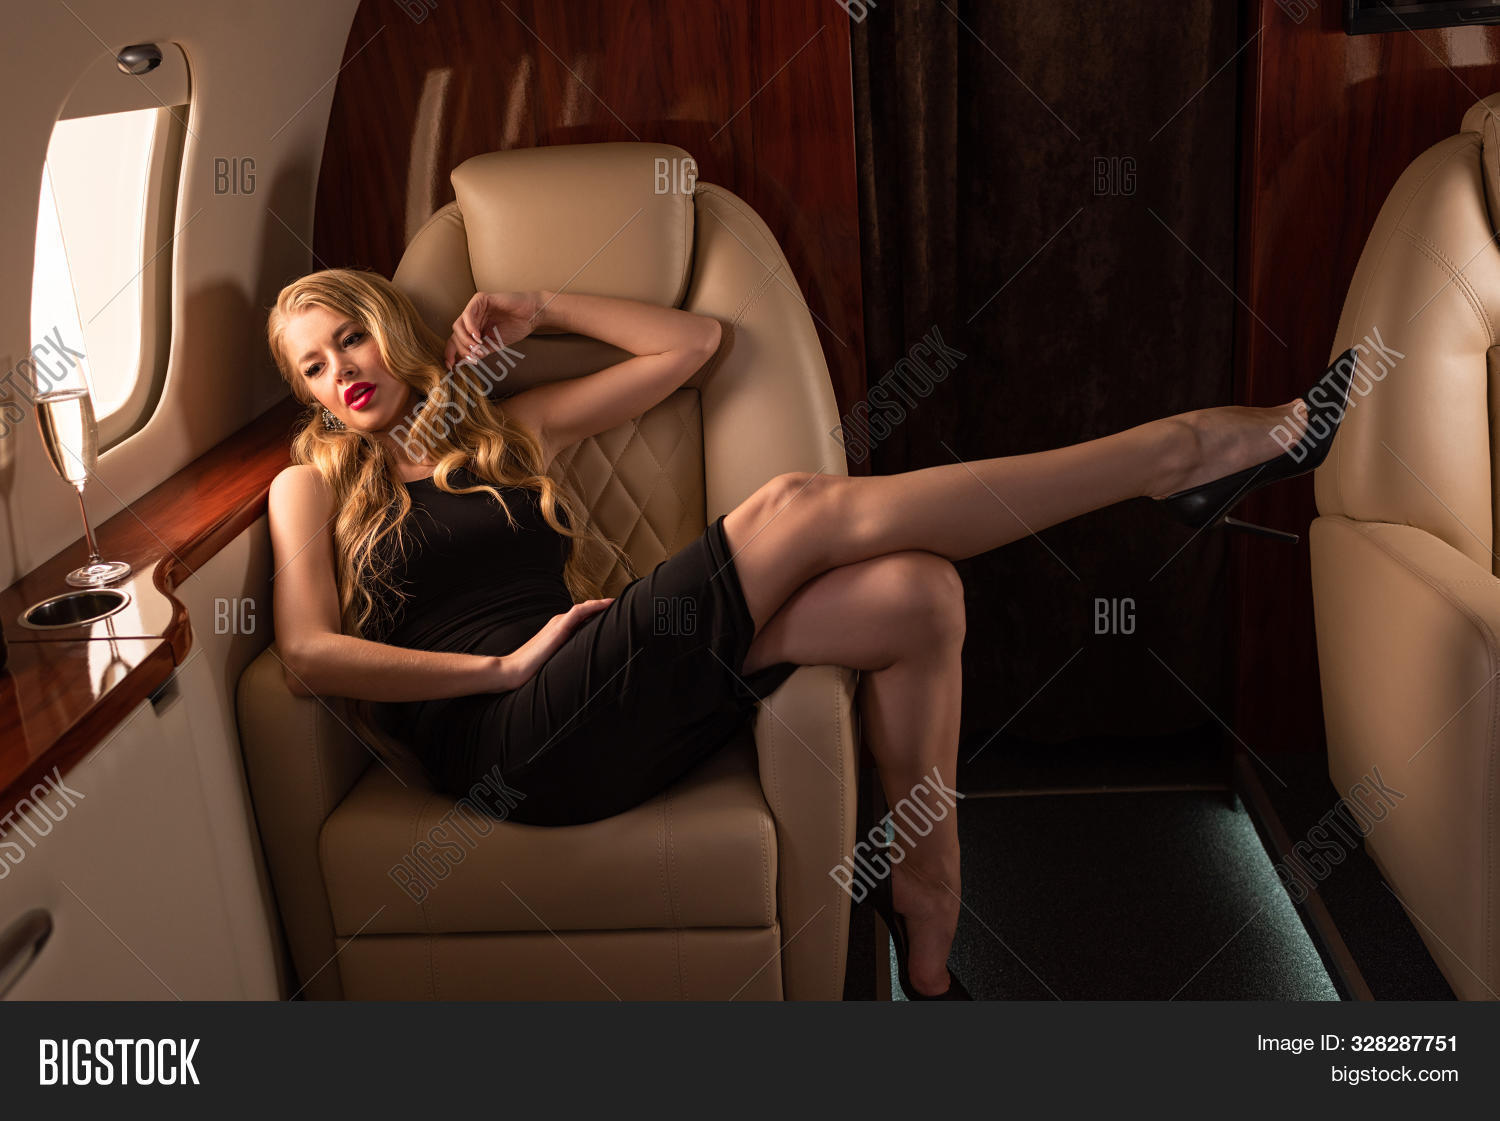 aircraft,airplane,alcohol,attractive,aviation,beautiful,beauty,blonde,caucasian,champagne,comfortable,commercial,dress,drink,european,flight,girl,glamor,glamorous,holiday,interior,journey,leisure,luxury,passion,passionate,plane,seductive,sensuality,sexy,success,tourism,tourist,transport,transportation,travel,traveler,trip,vacation,vip,voyage,weekend,woman